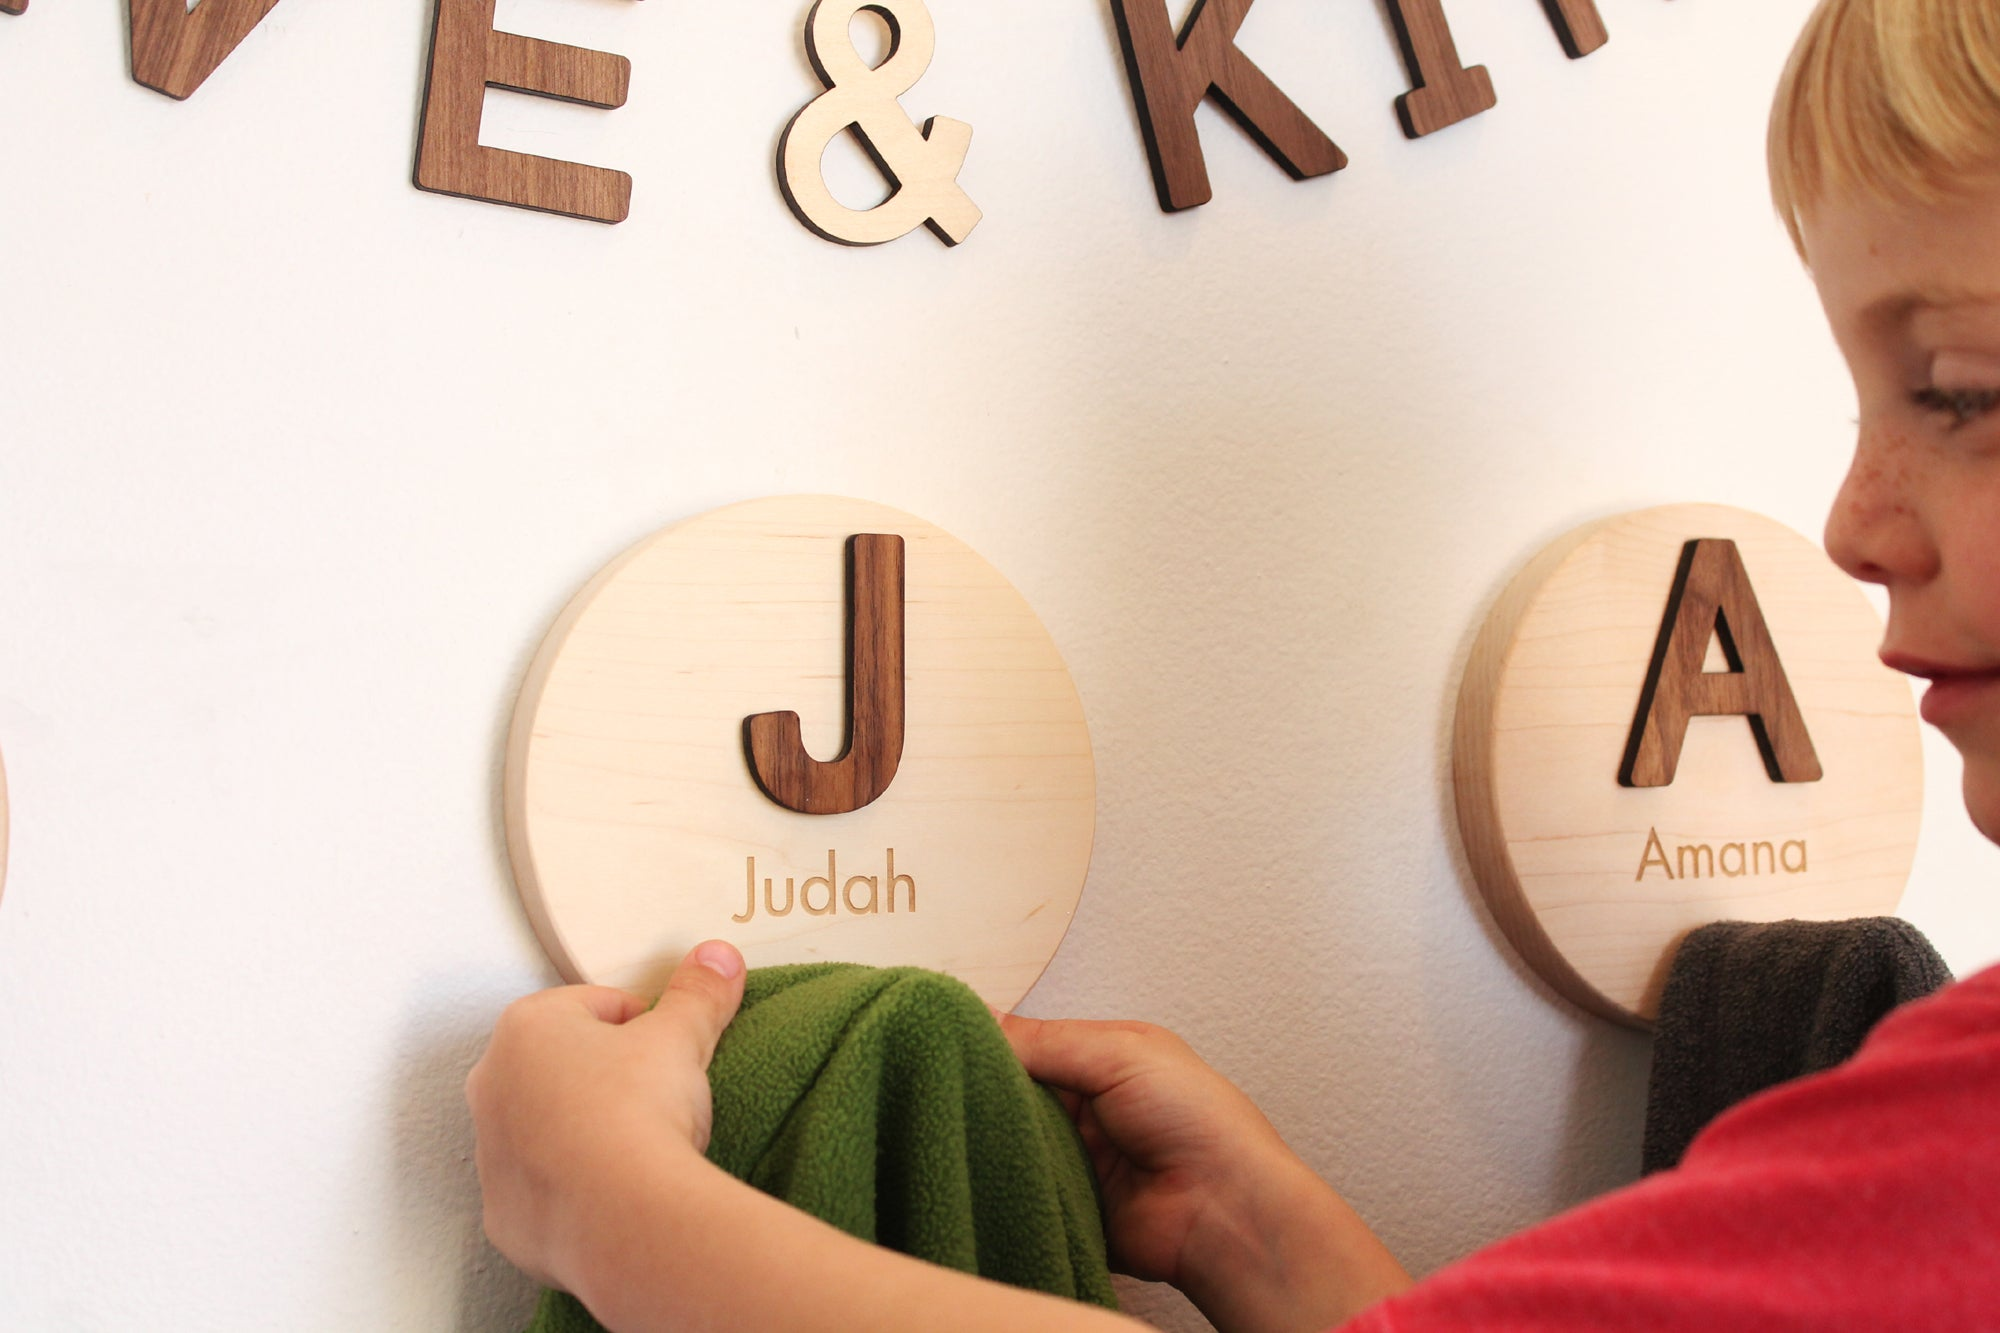 childrens wooden coat hooks for wall